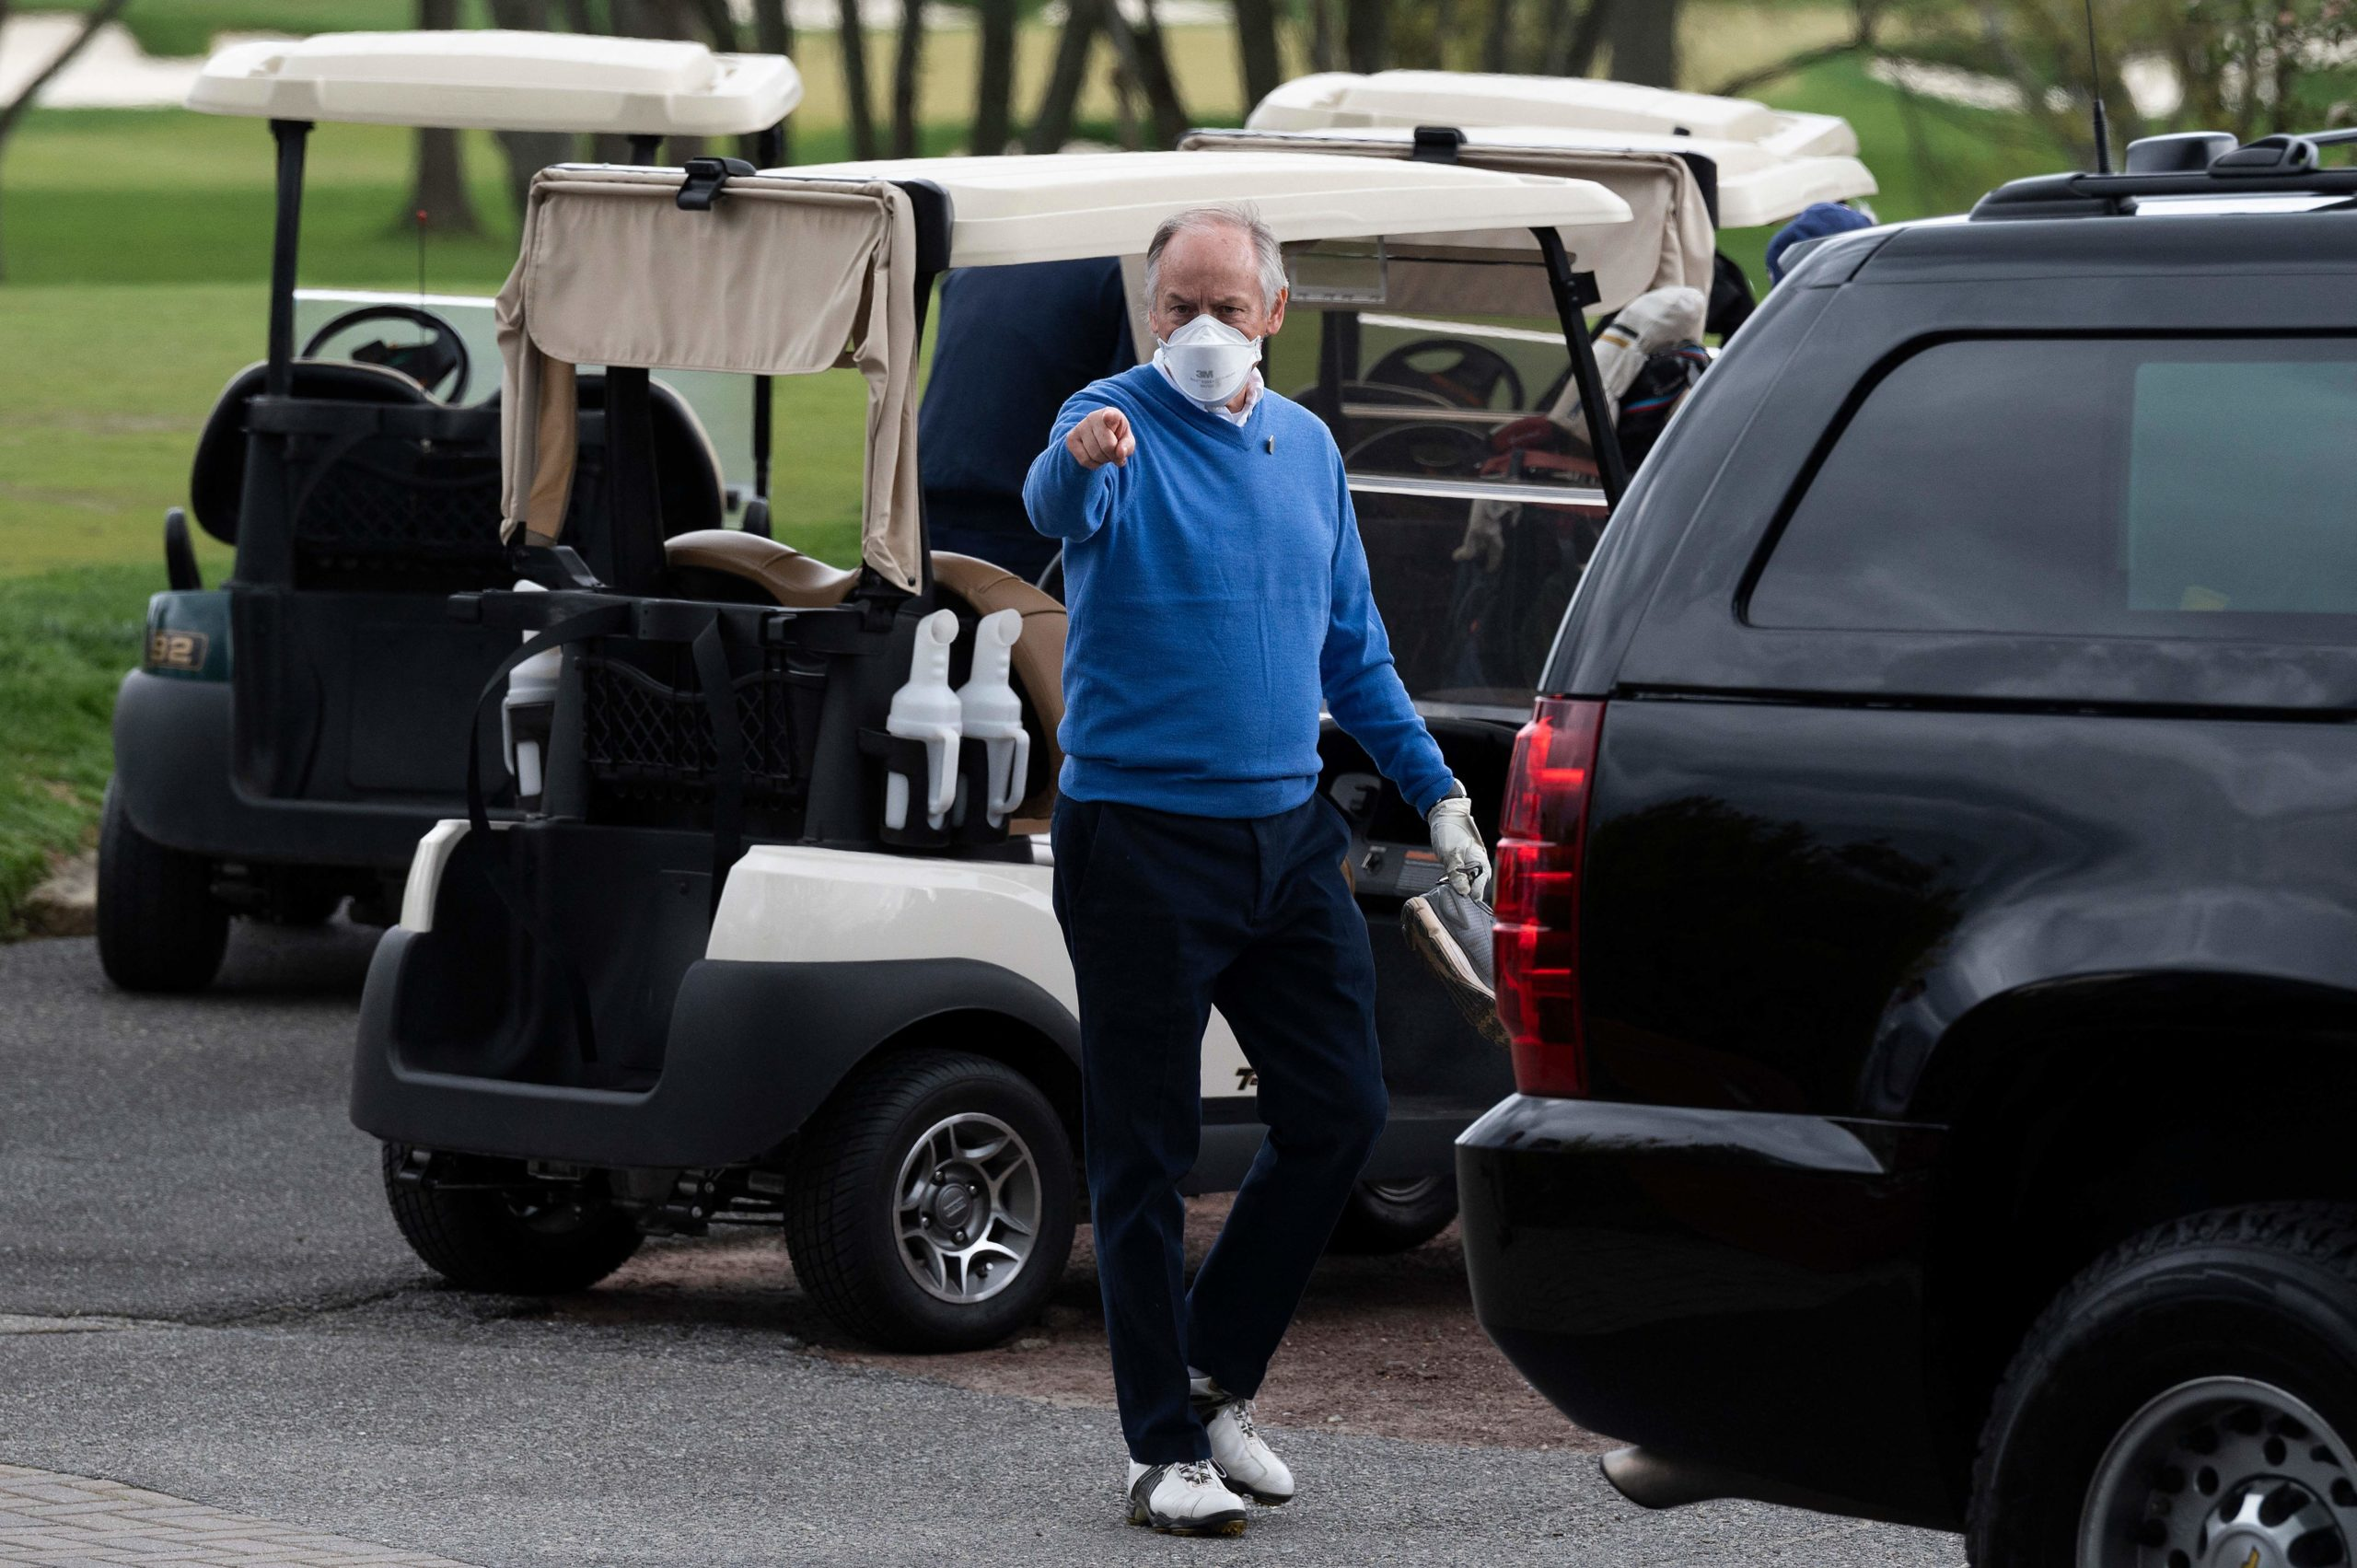 Counselor to the President Steve Ricchetti (C) gestures after playing a round of golf with US President Joe Biden at Wilmington Country Club in Wilmington, Delaware on April 17, 2021. - President Joe Biden played golf for the first time in his presidency Saturday, hitting the fairways in his home city of Wilmington. (Photo by Jim Watson/AFP via Getty Images)